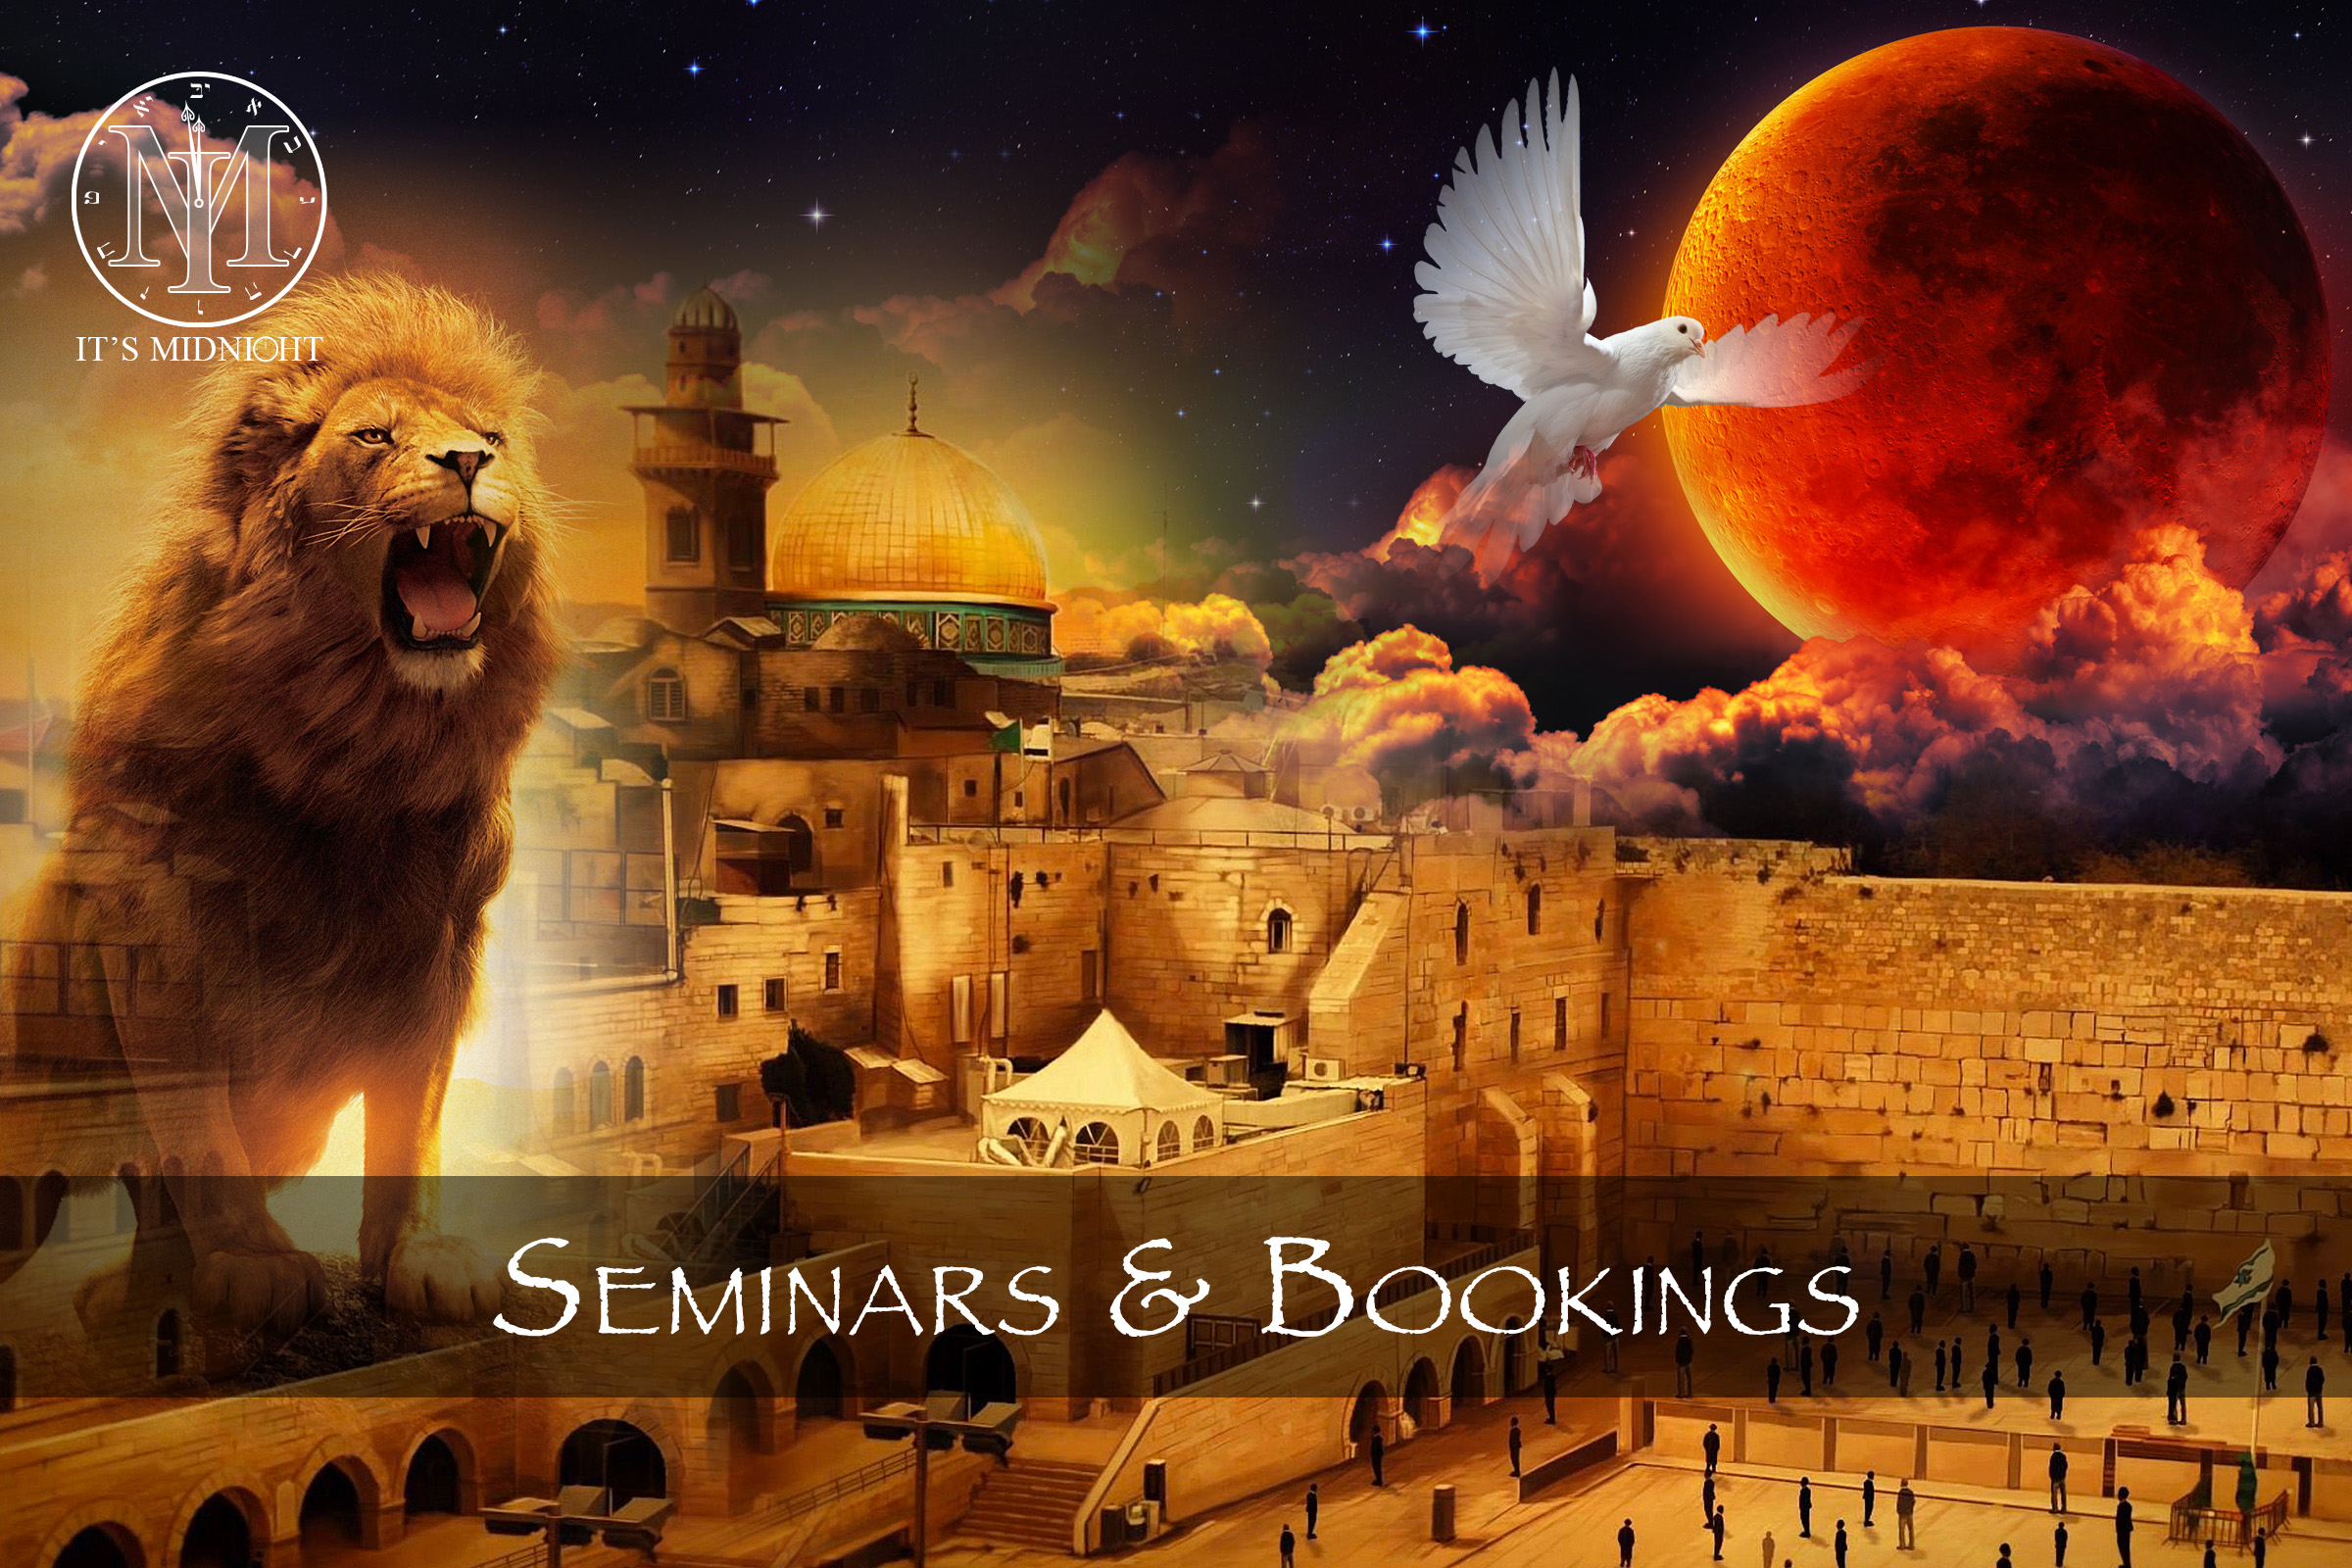 Seminars & Bookings Thumbnail.jpg